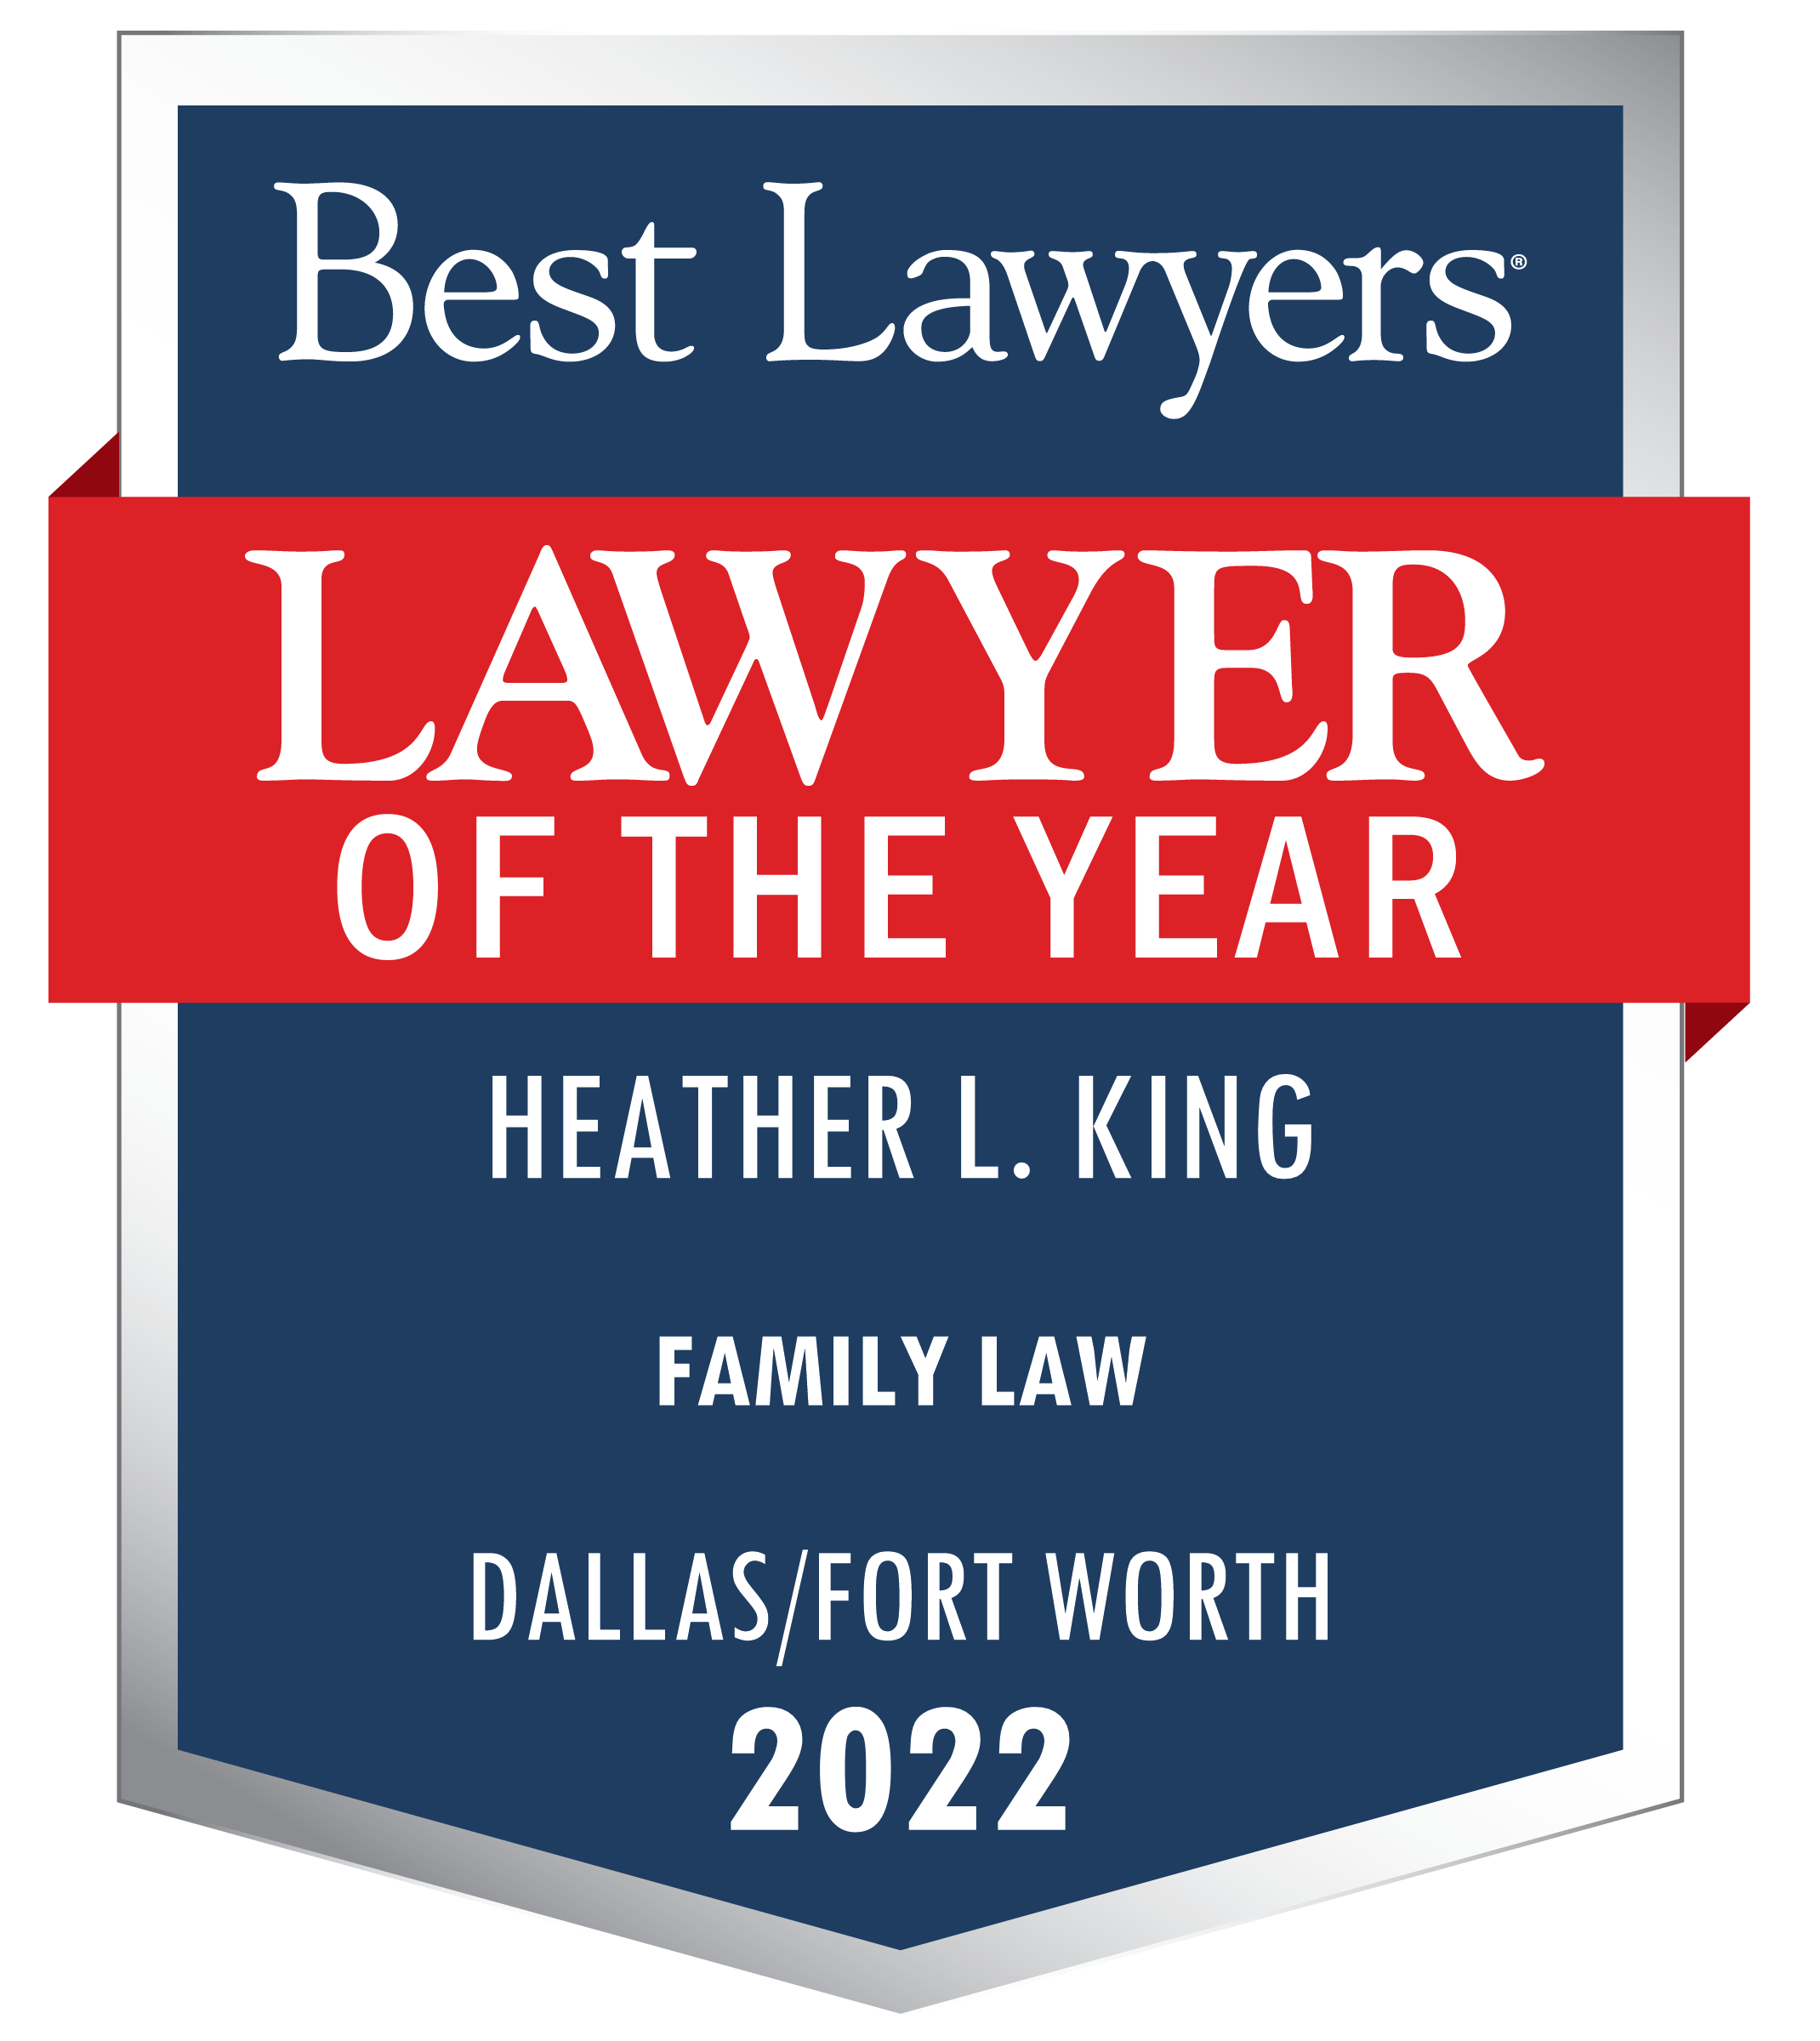 Best Lawyers Lawyer of the Year